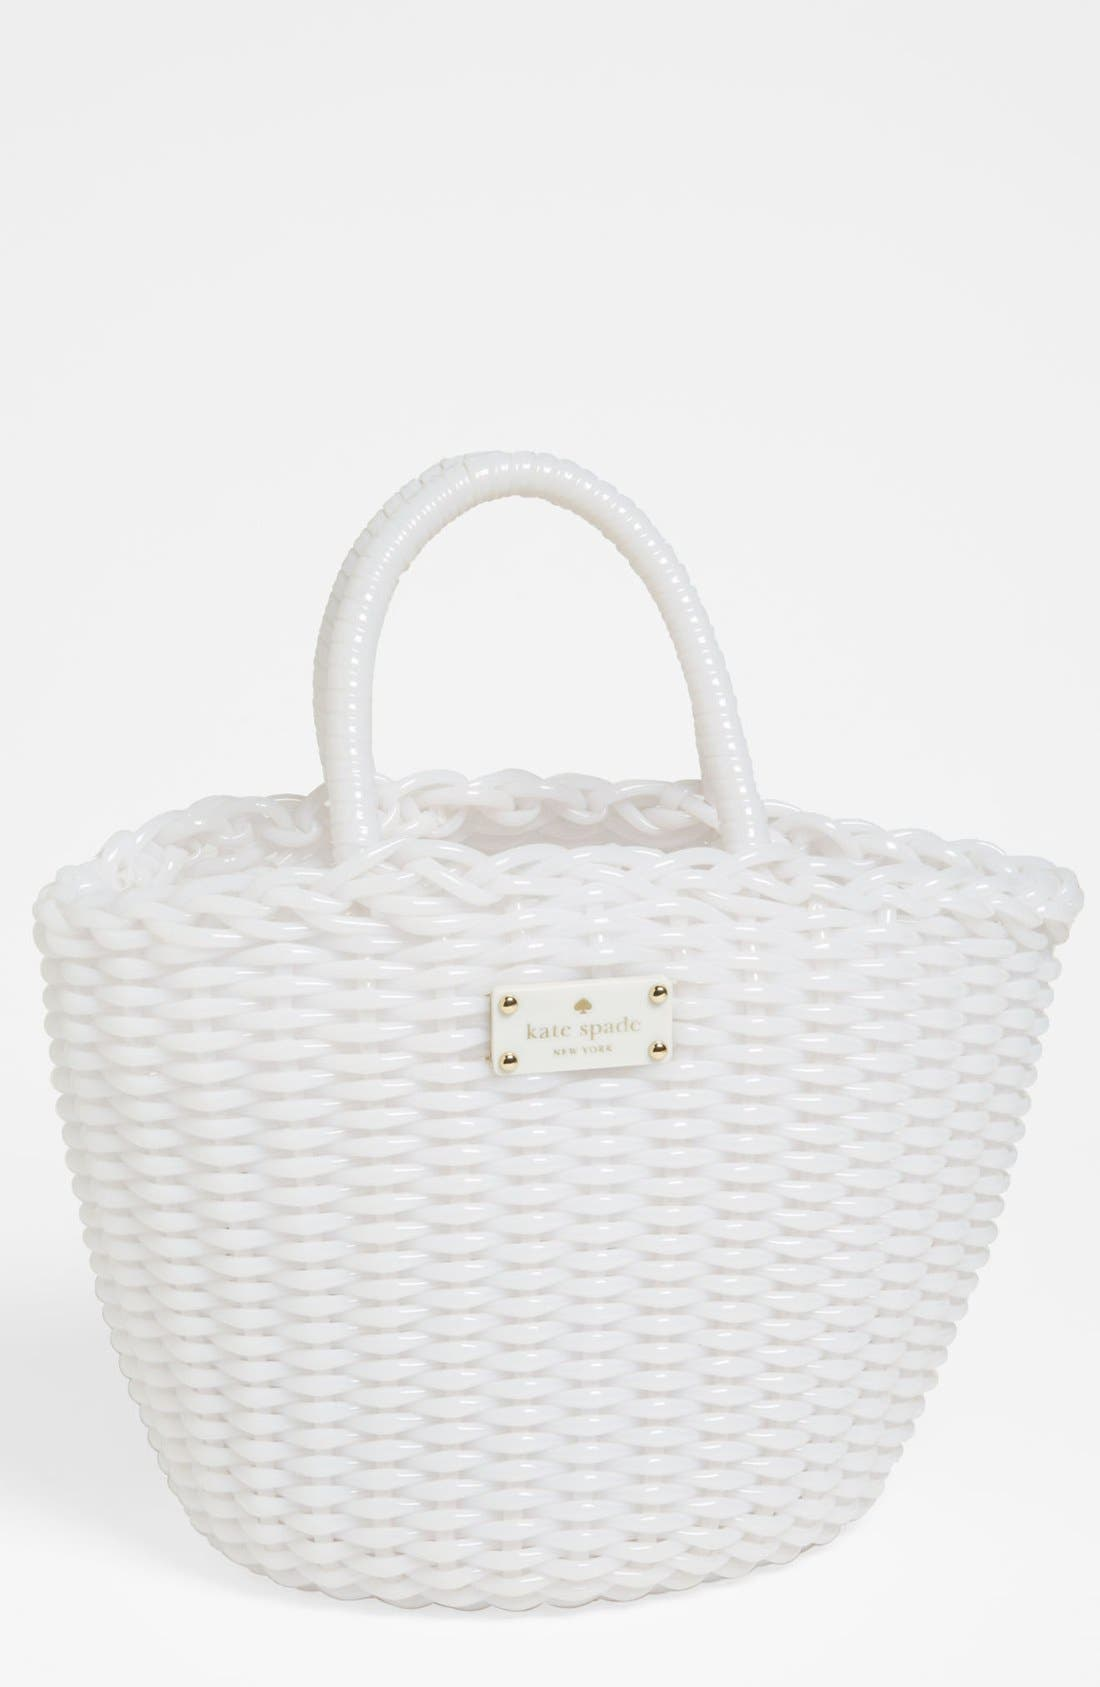 KATE SPADE NEW YORK 'beach club - beth' tote, Main, color, 100